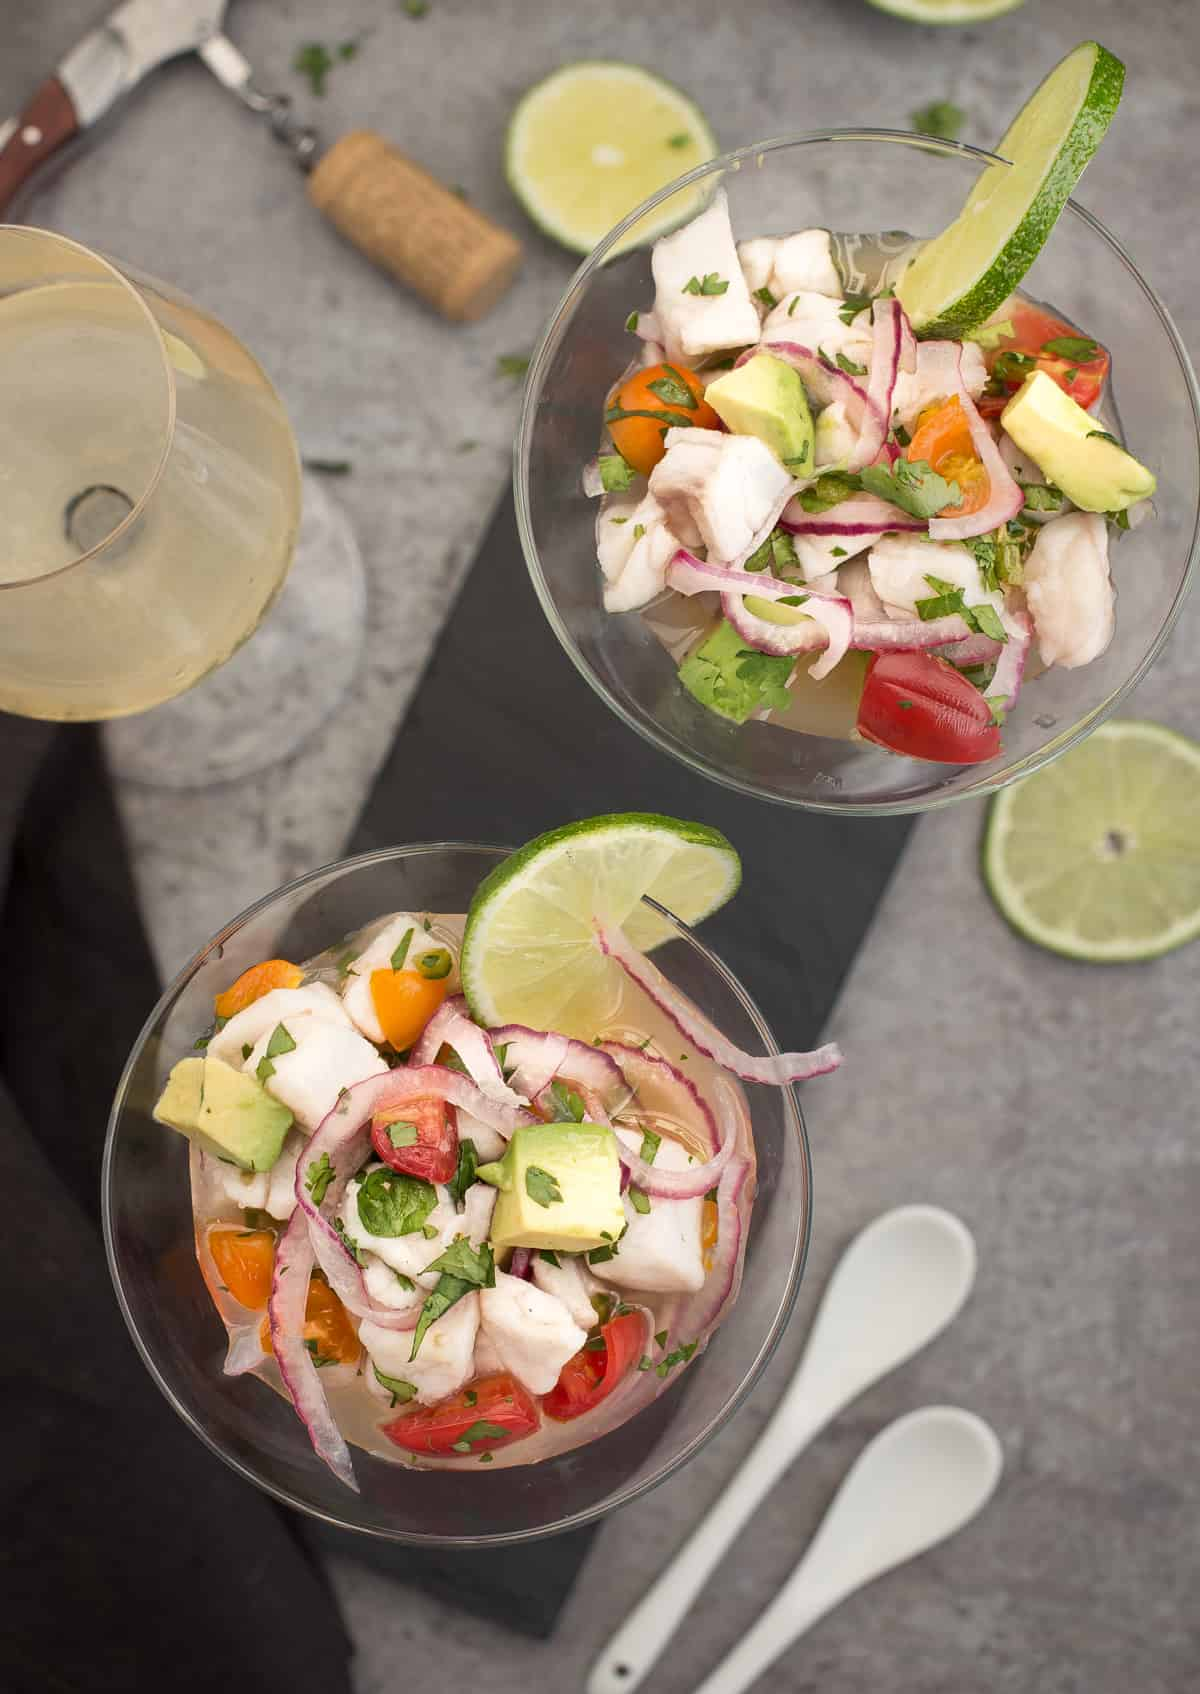 Two glasses of Classic Ceviche and a glass of white wine